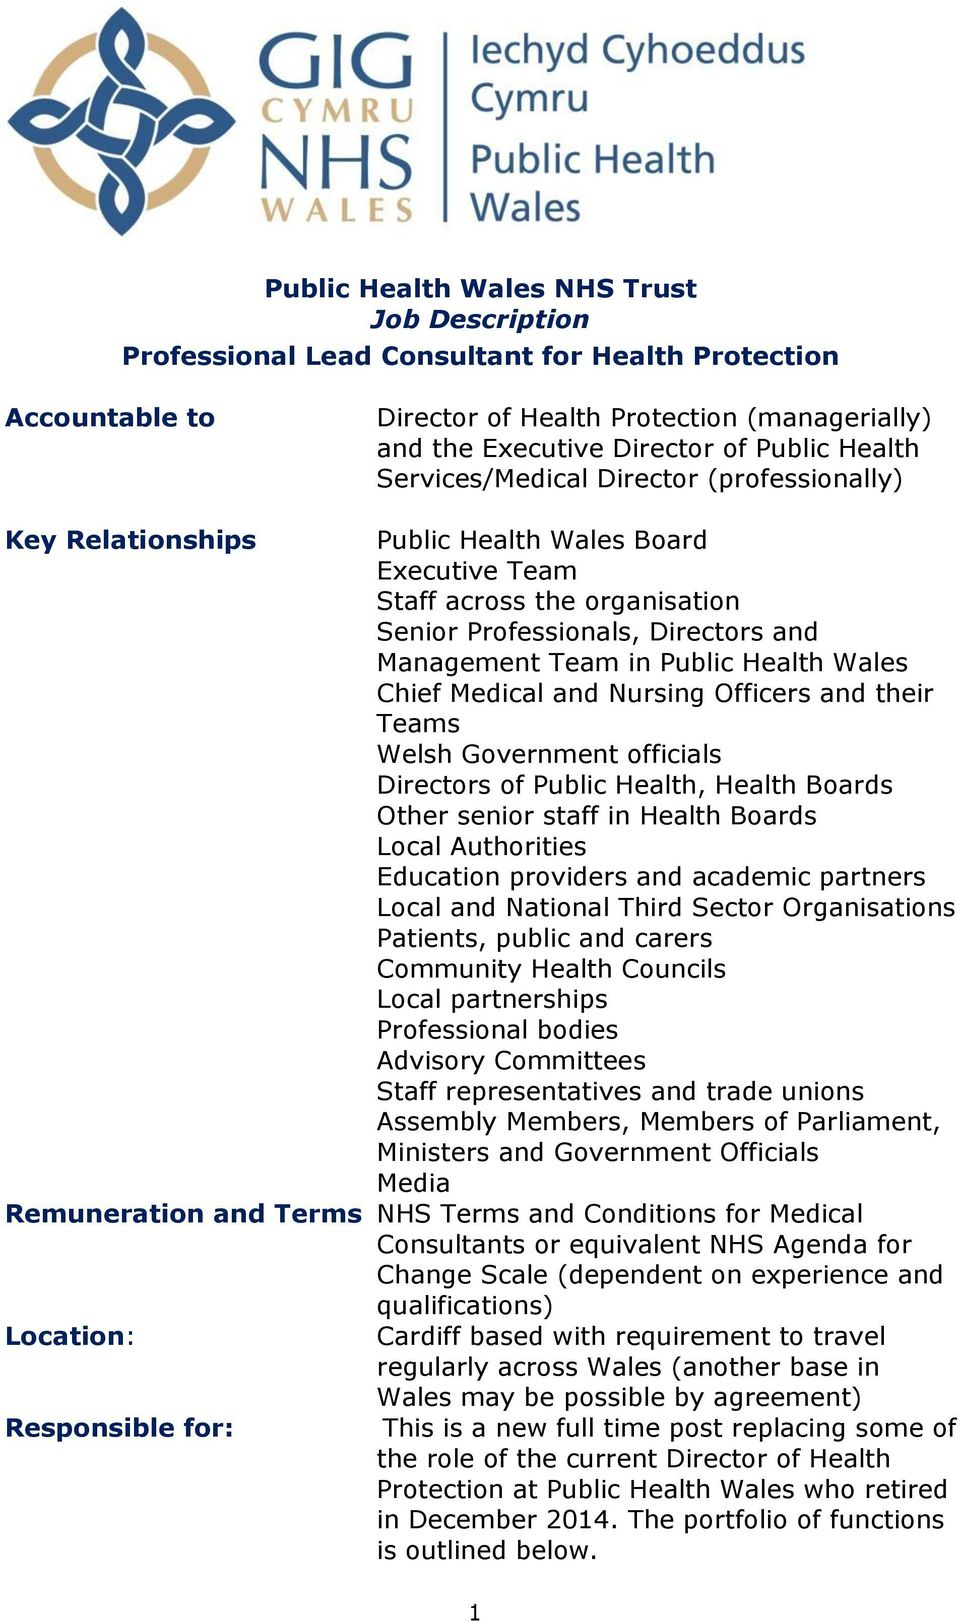 Public Health Wales Chief Medical and Nursing Officers and their Teams Welsh Government officials Directors of Public Health, Health Boards Other senior staff in Health Boards Local Authorities